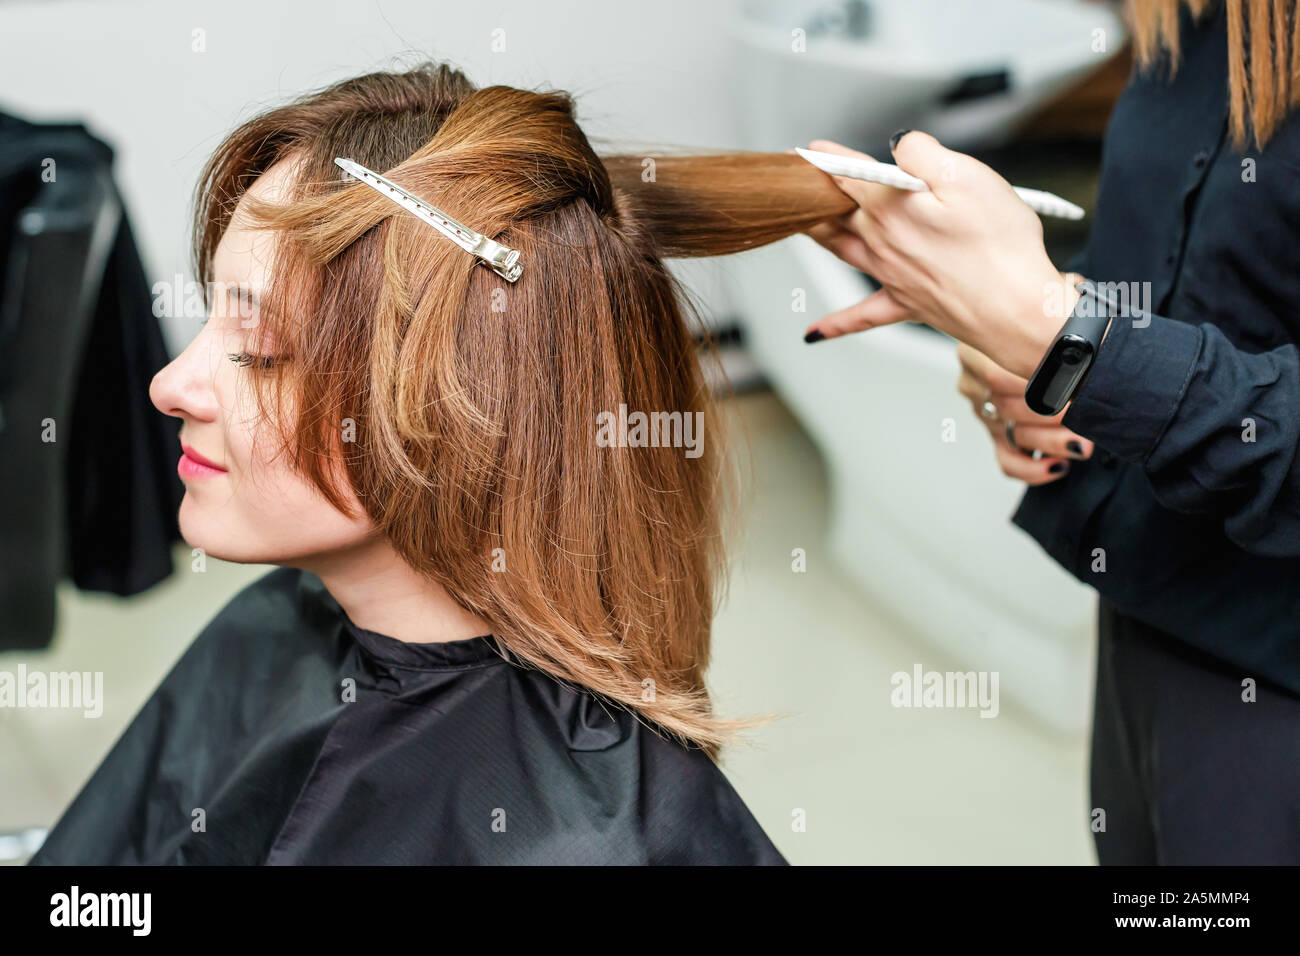 Woman hairdresser is making hairstyle to red hair girl in beauty salon. The process of hair styling in the hairdressing salon. Stock Photo